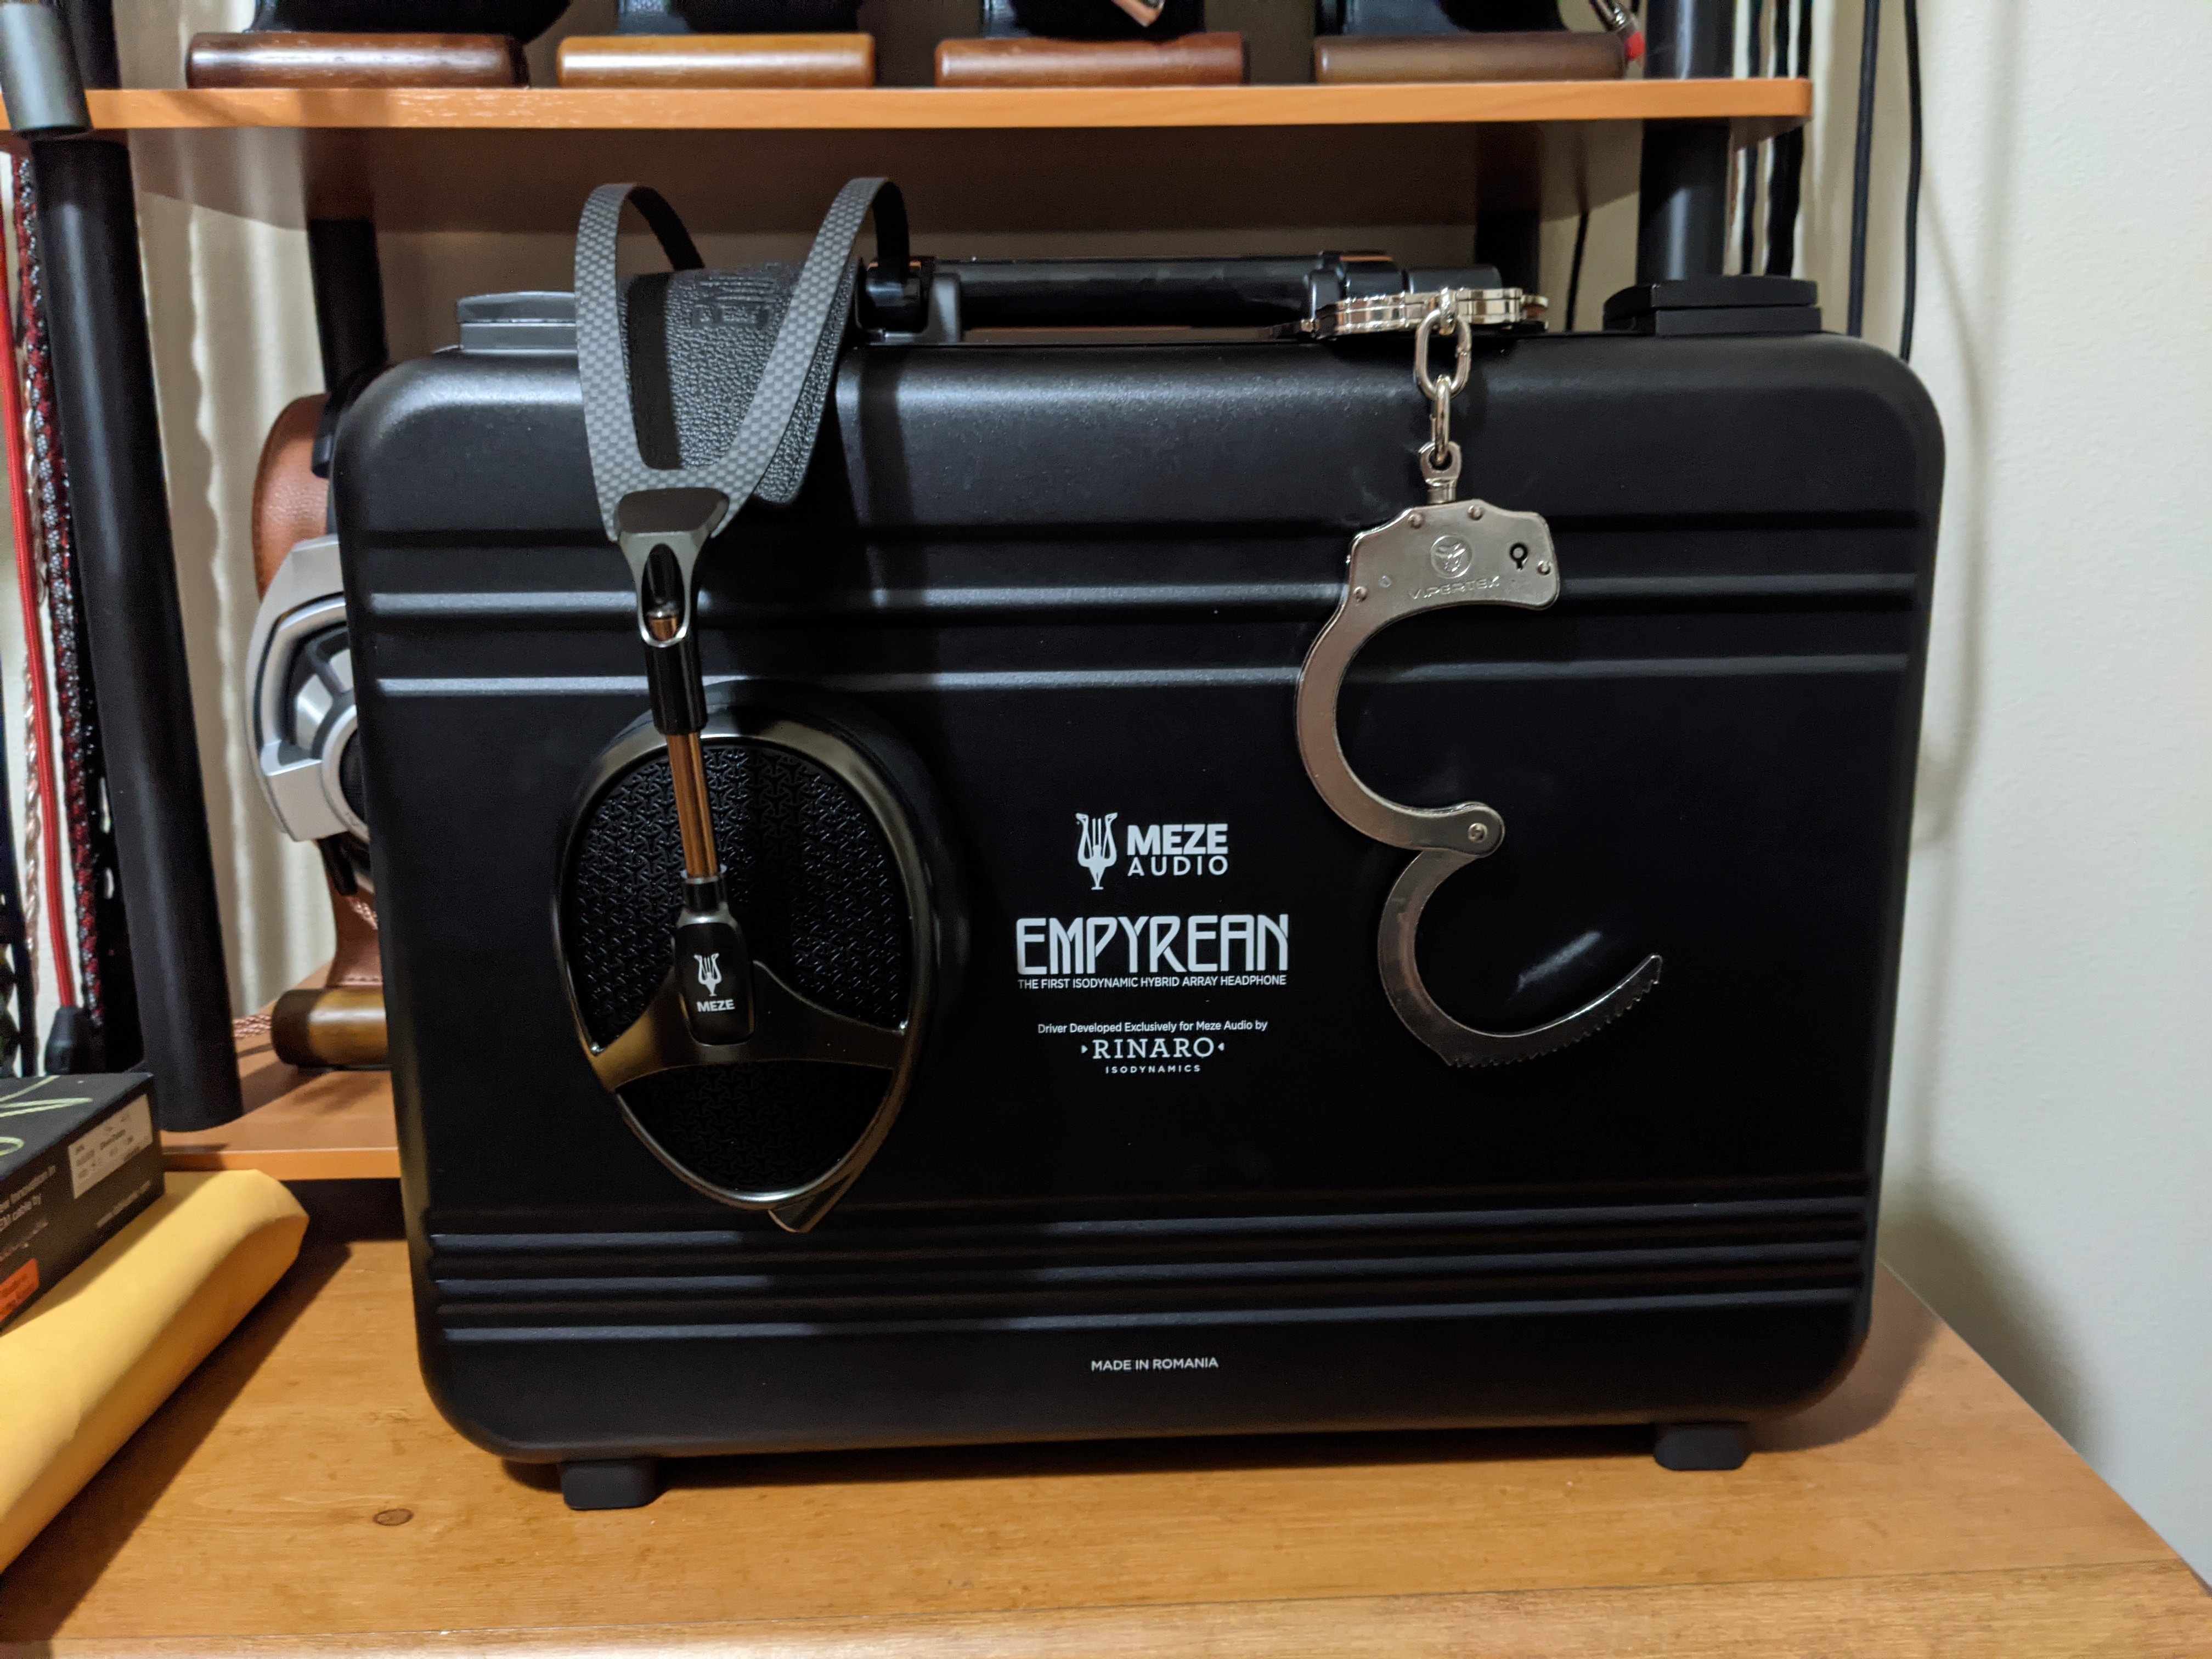 Meze Empyrean attache case with optional handcuffs